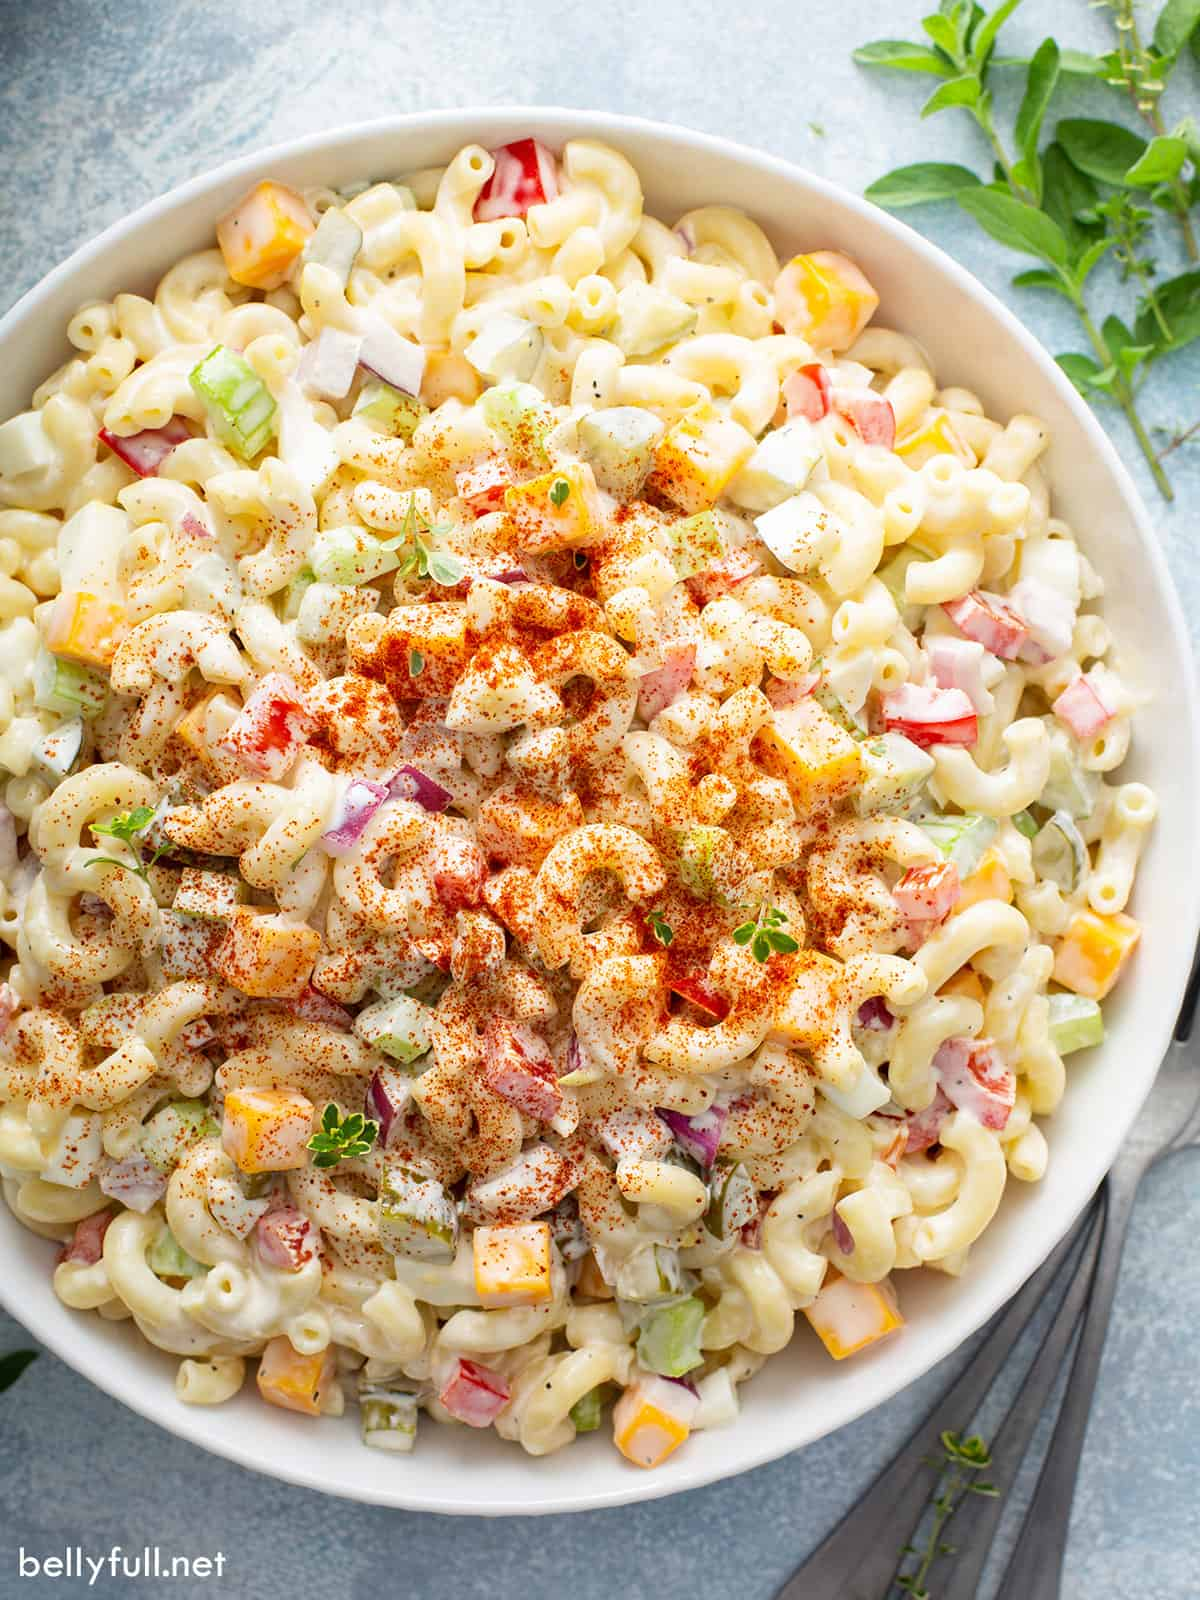 Aerial view of a big bowl of macaroni salad with egg, topped with paprika